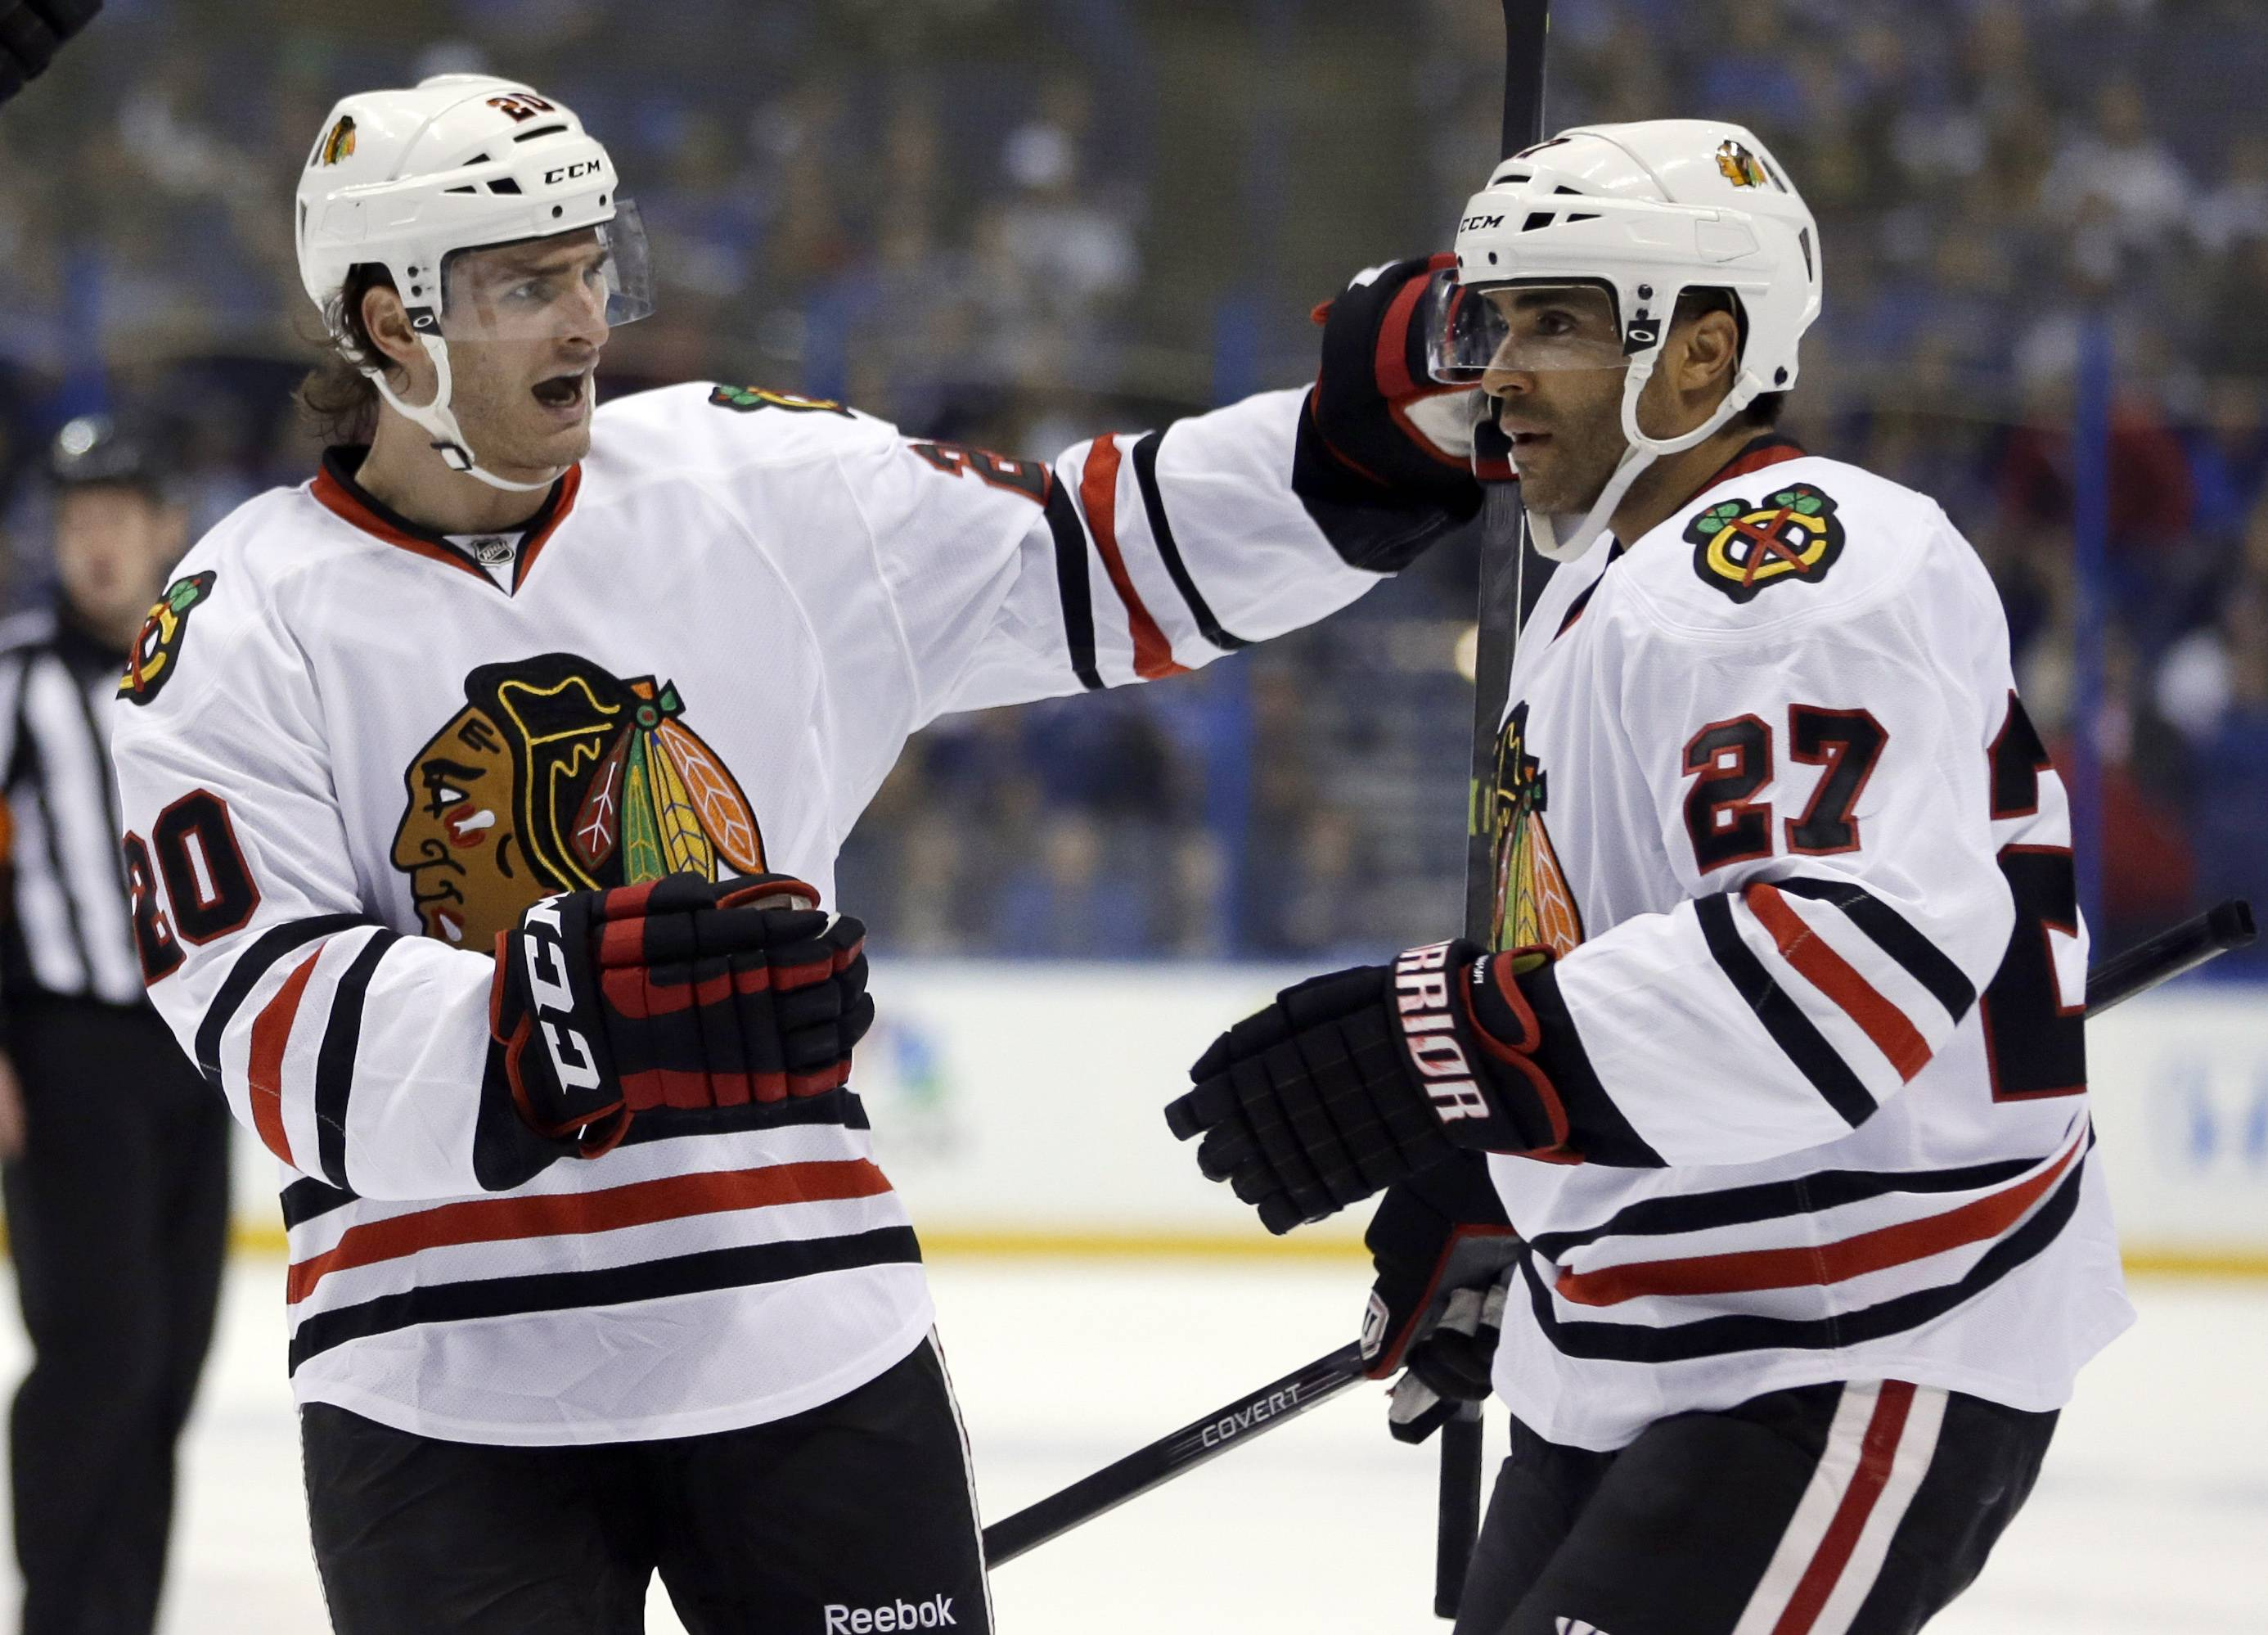 Chicago Blackhawks' Johnny Oduya, of Sweden, is congratulated by Brandon Saad, left, after scoring during the first period .